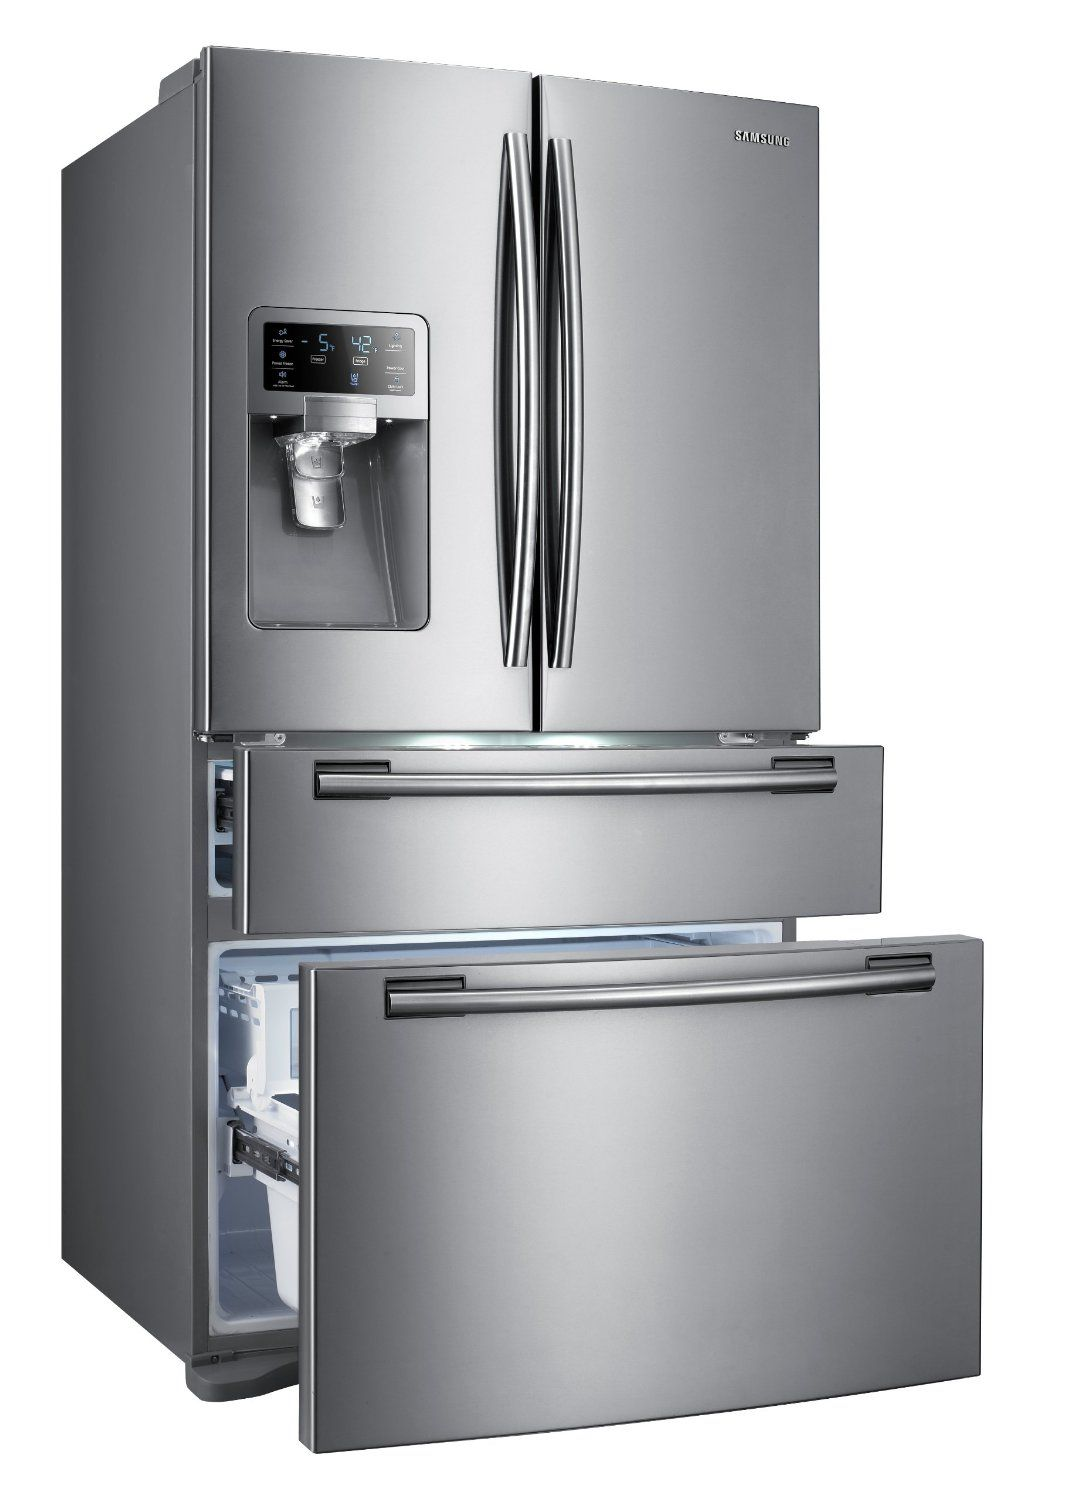 81PNnoTvgwL. SL1500 A Guide to French Door Refrigerator Reviews ...